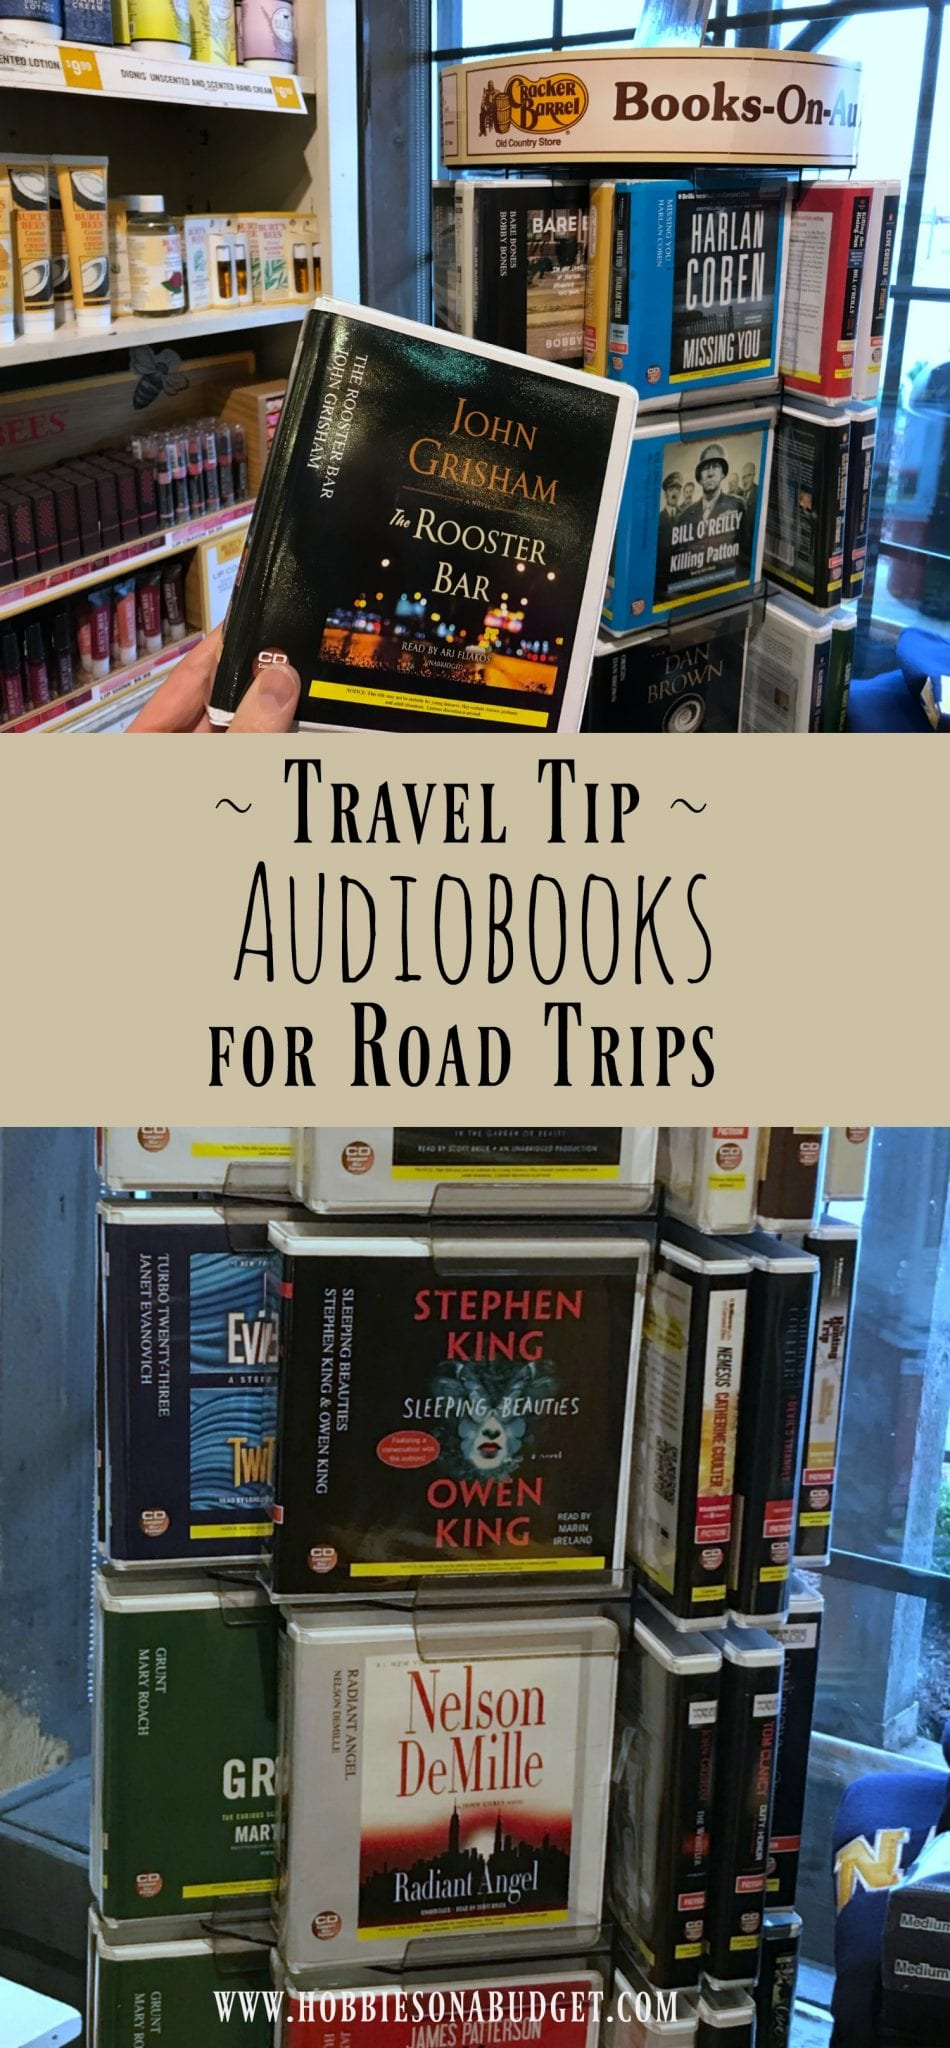 Travel tip Audiobooks for road trips